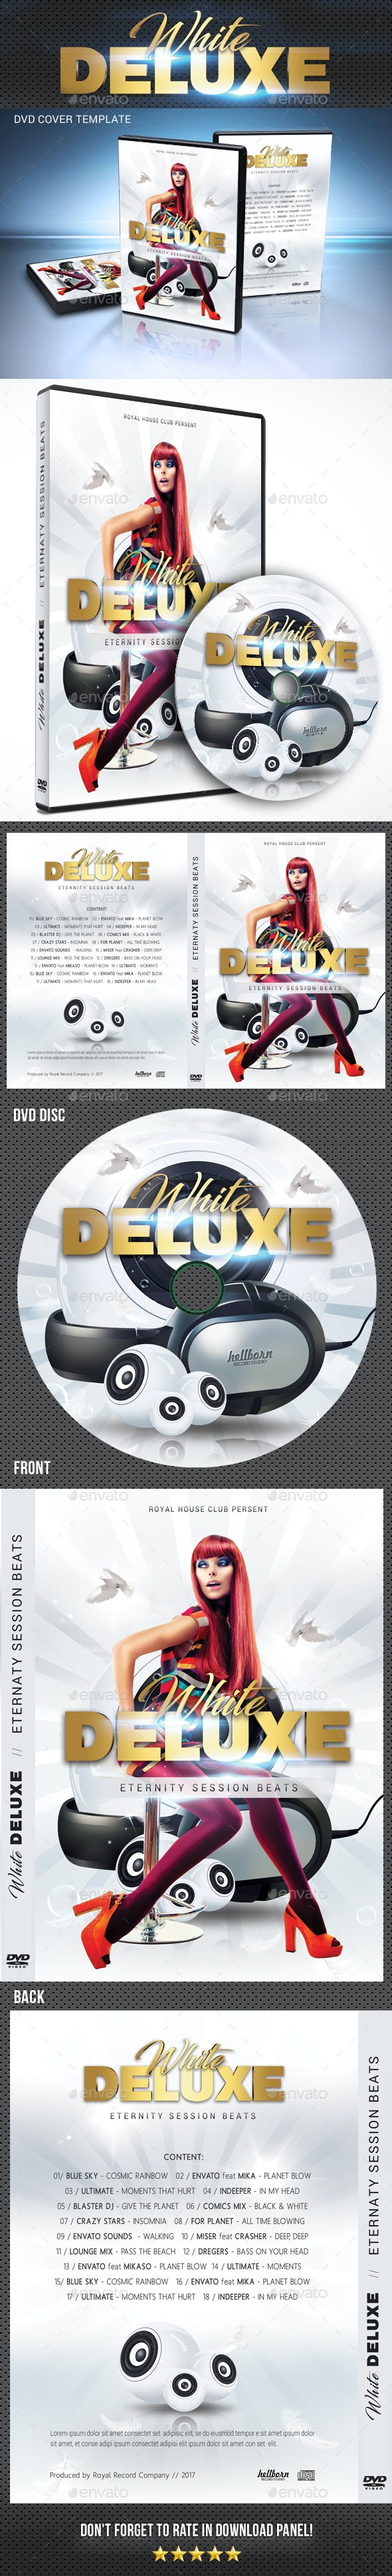 White Deluxe DVD Cover Template - CD & DVD Artwork Print Templates